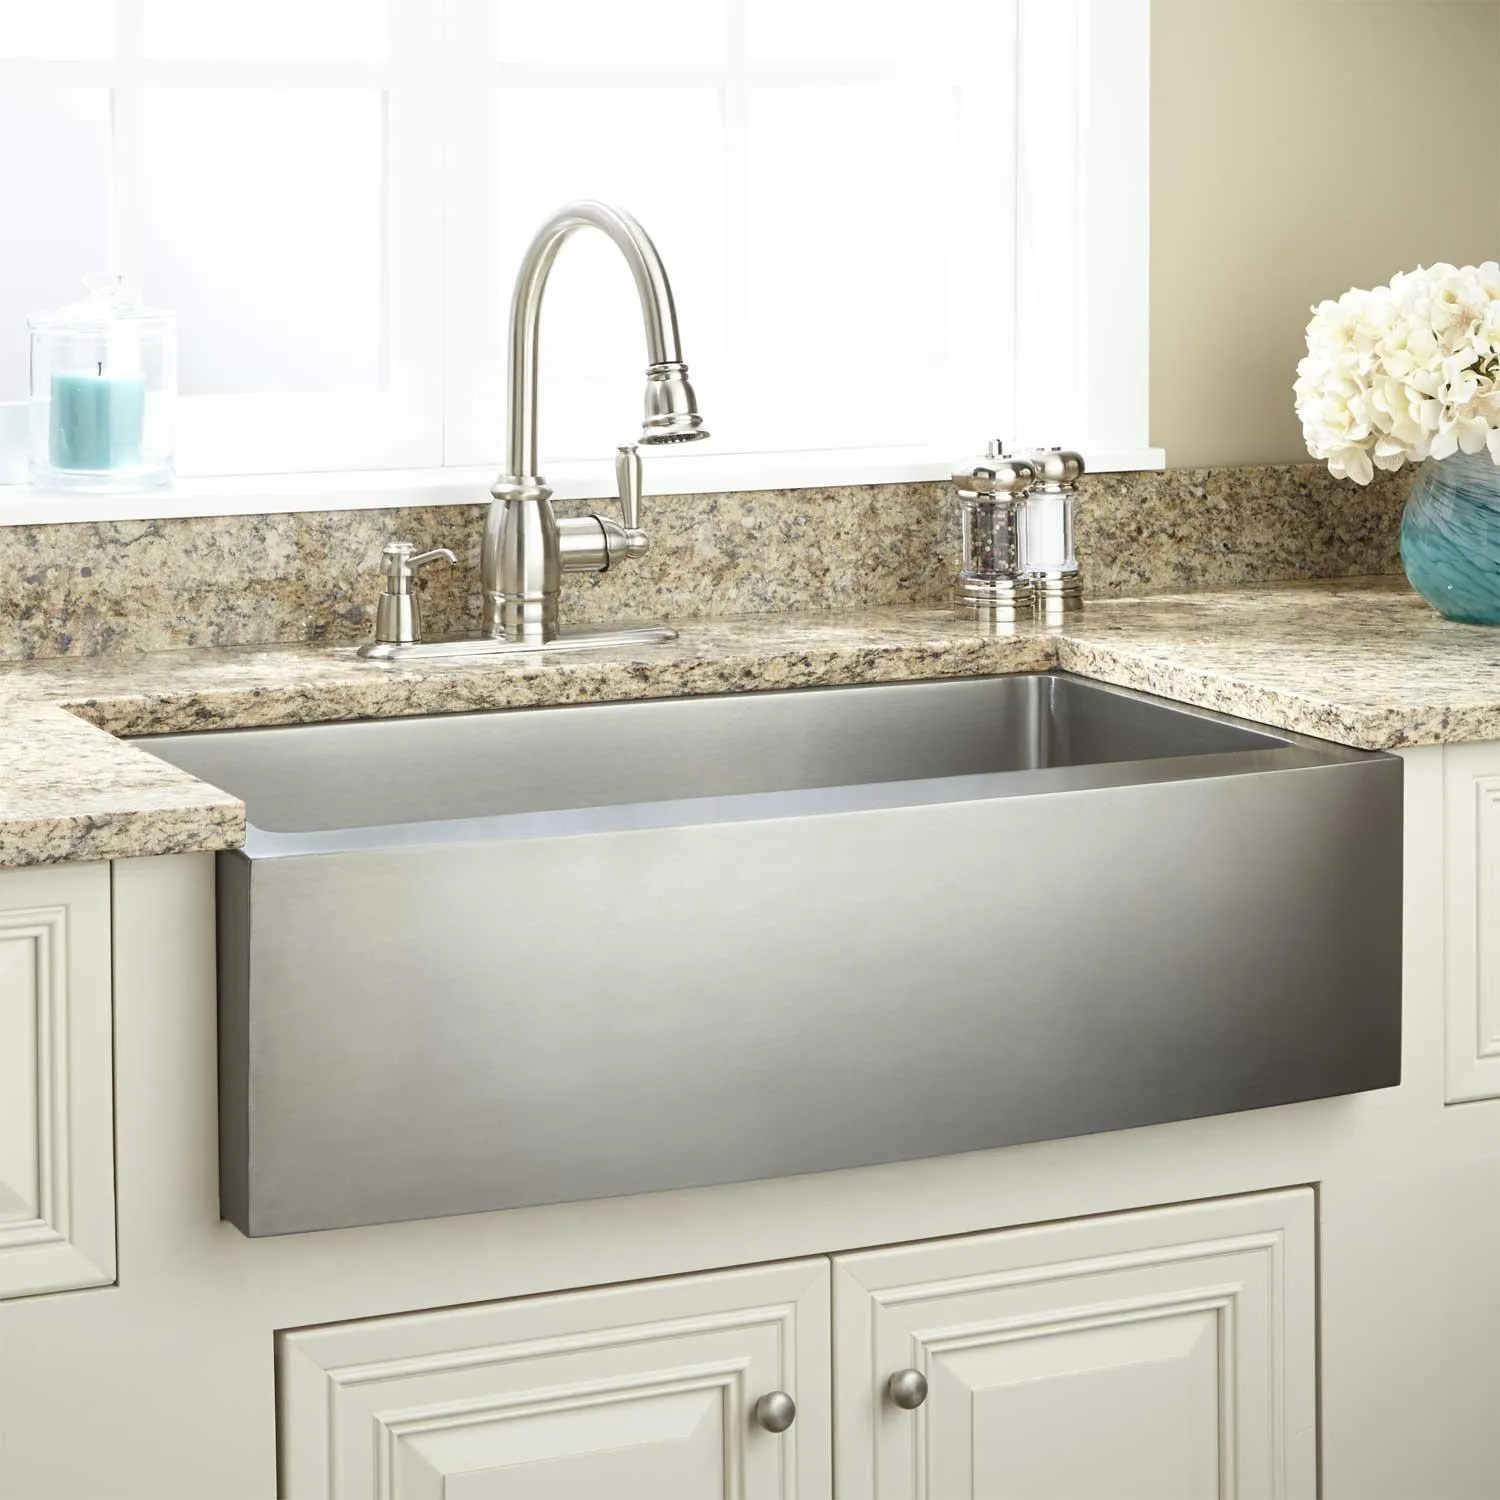 36 Optimum Stainless Steel Farmhouse Sink Curved